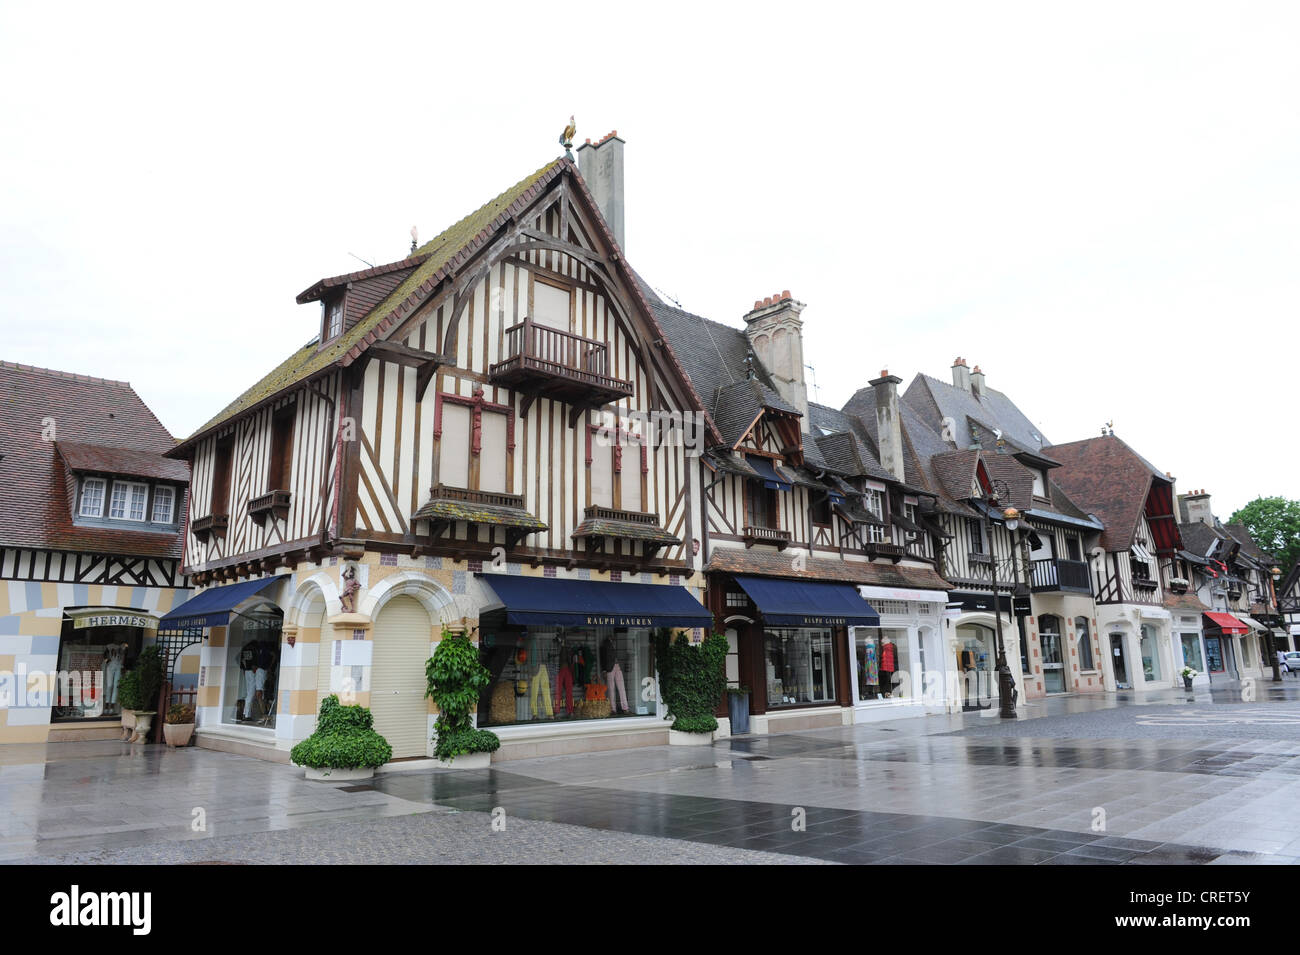 Deauville exclusive shops shop shoppng Normandy France - Stock Image